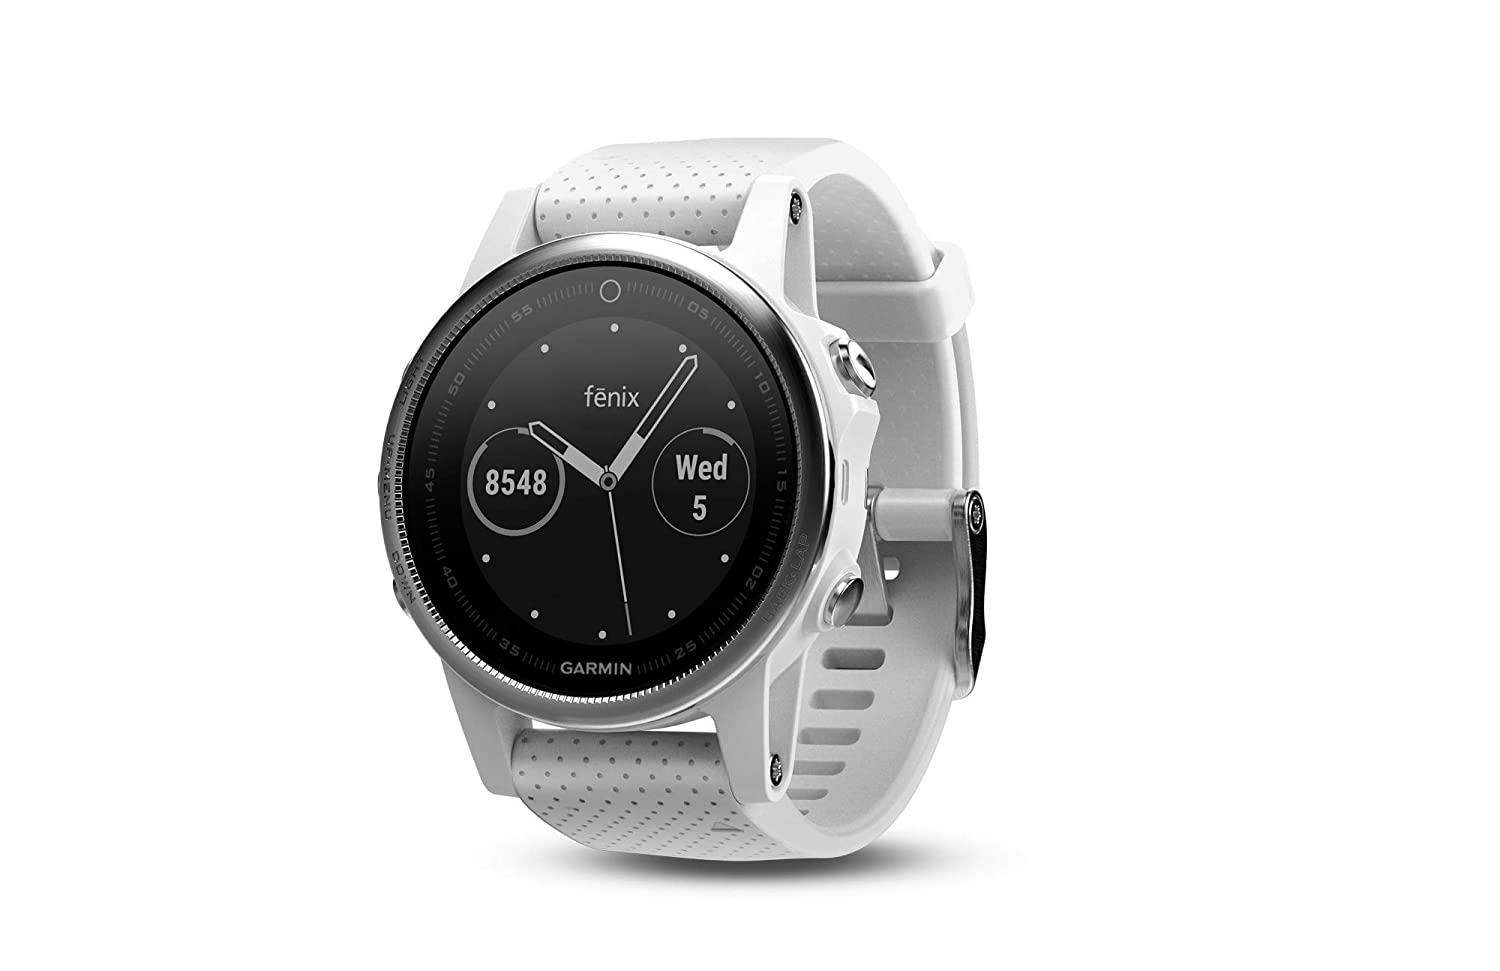 Garmin Fenix 5s White With Carrara Band Cell The Pebble Smart Watch Will Include A Flexible Circuit Board Phones Accessories